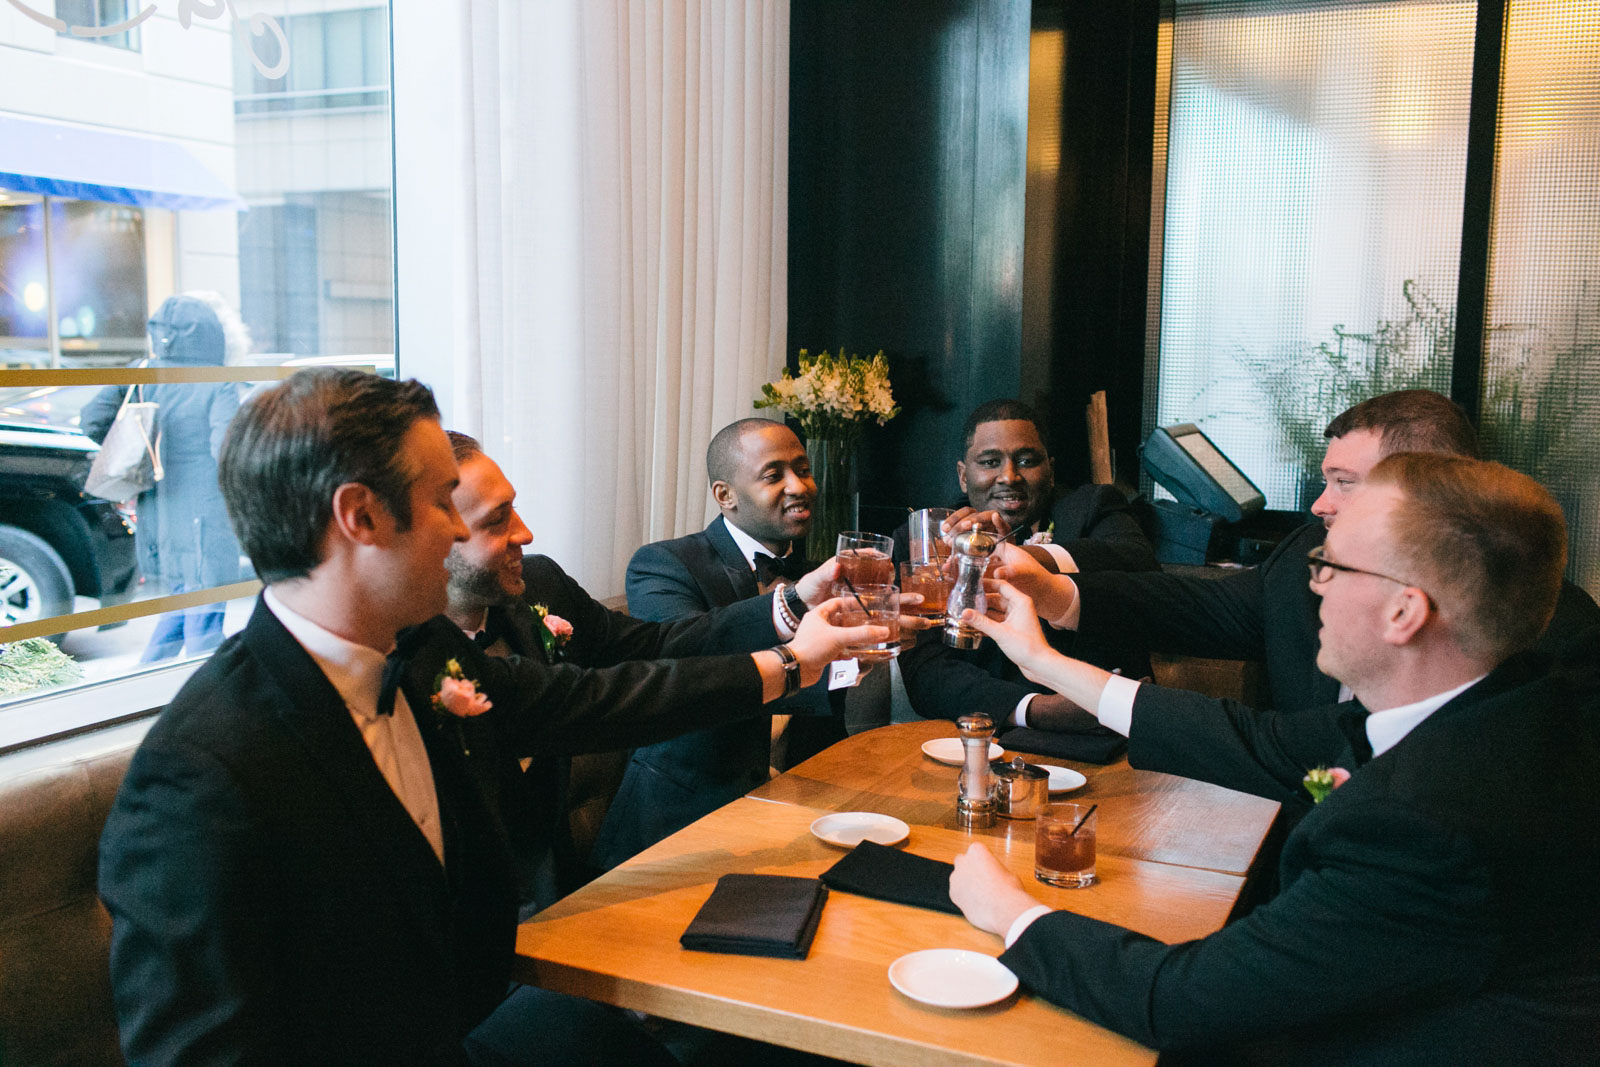 Groom and groomsmen sharing a toast at the hotel bar at the Ritz-Carlton Boston.